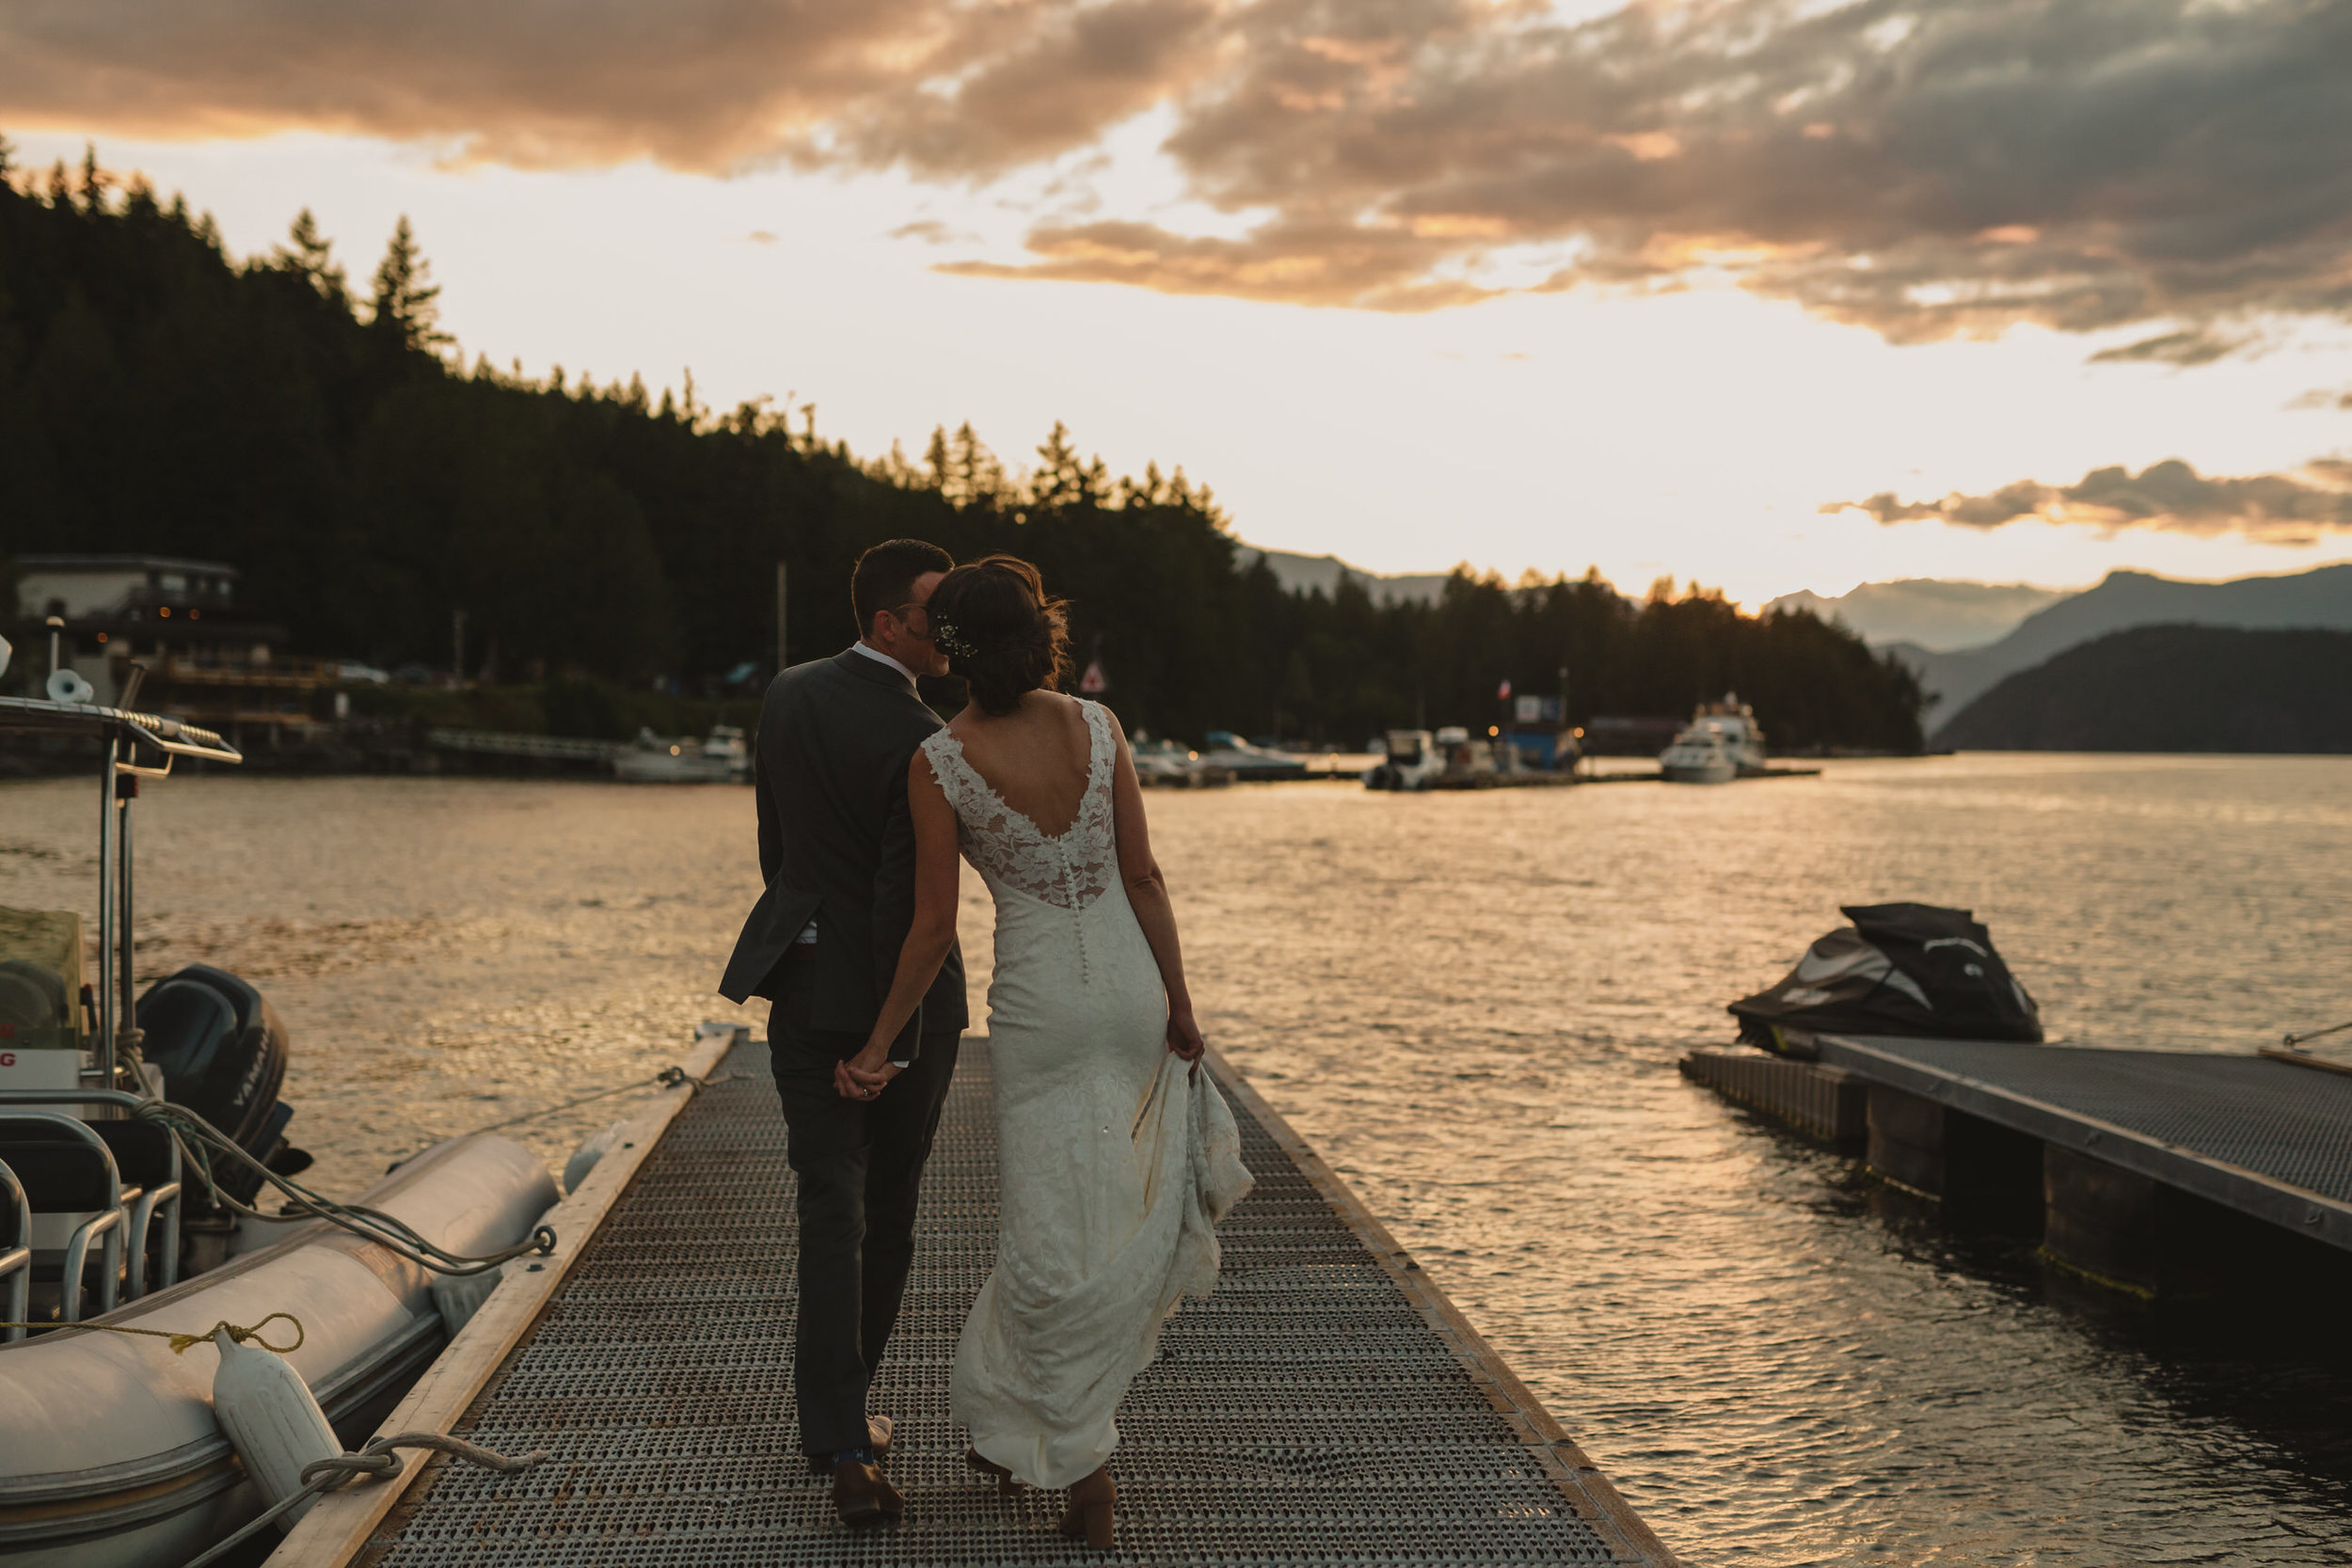 West Coast Wilderness Lodge Wedding Photos - Vancouver Wedding Photographer & Videographer - Sunshine Coast Wedding Photos - Sunshine Coast Wedding Photographer - Jennifer Picard Photography - IMG_1505.jpg